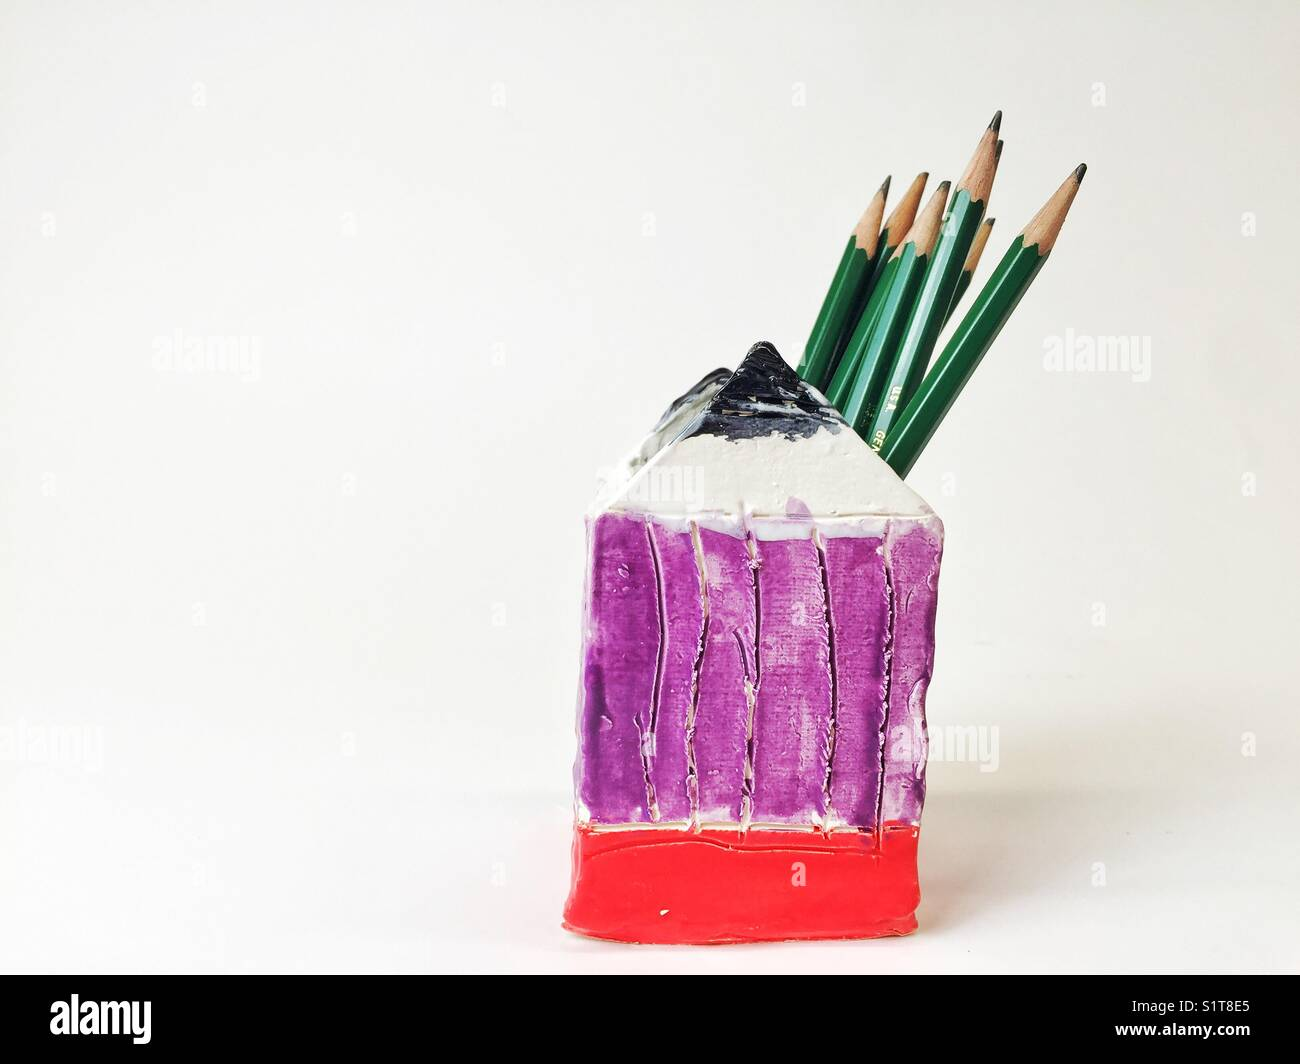 Pencils in pencil shaped ceramic container on white background - Stock Image